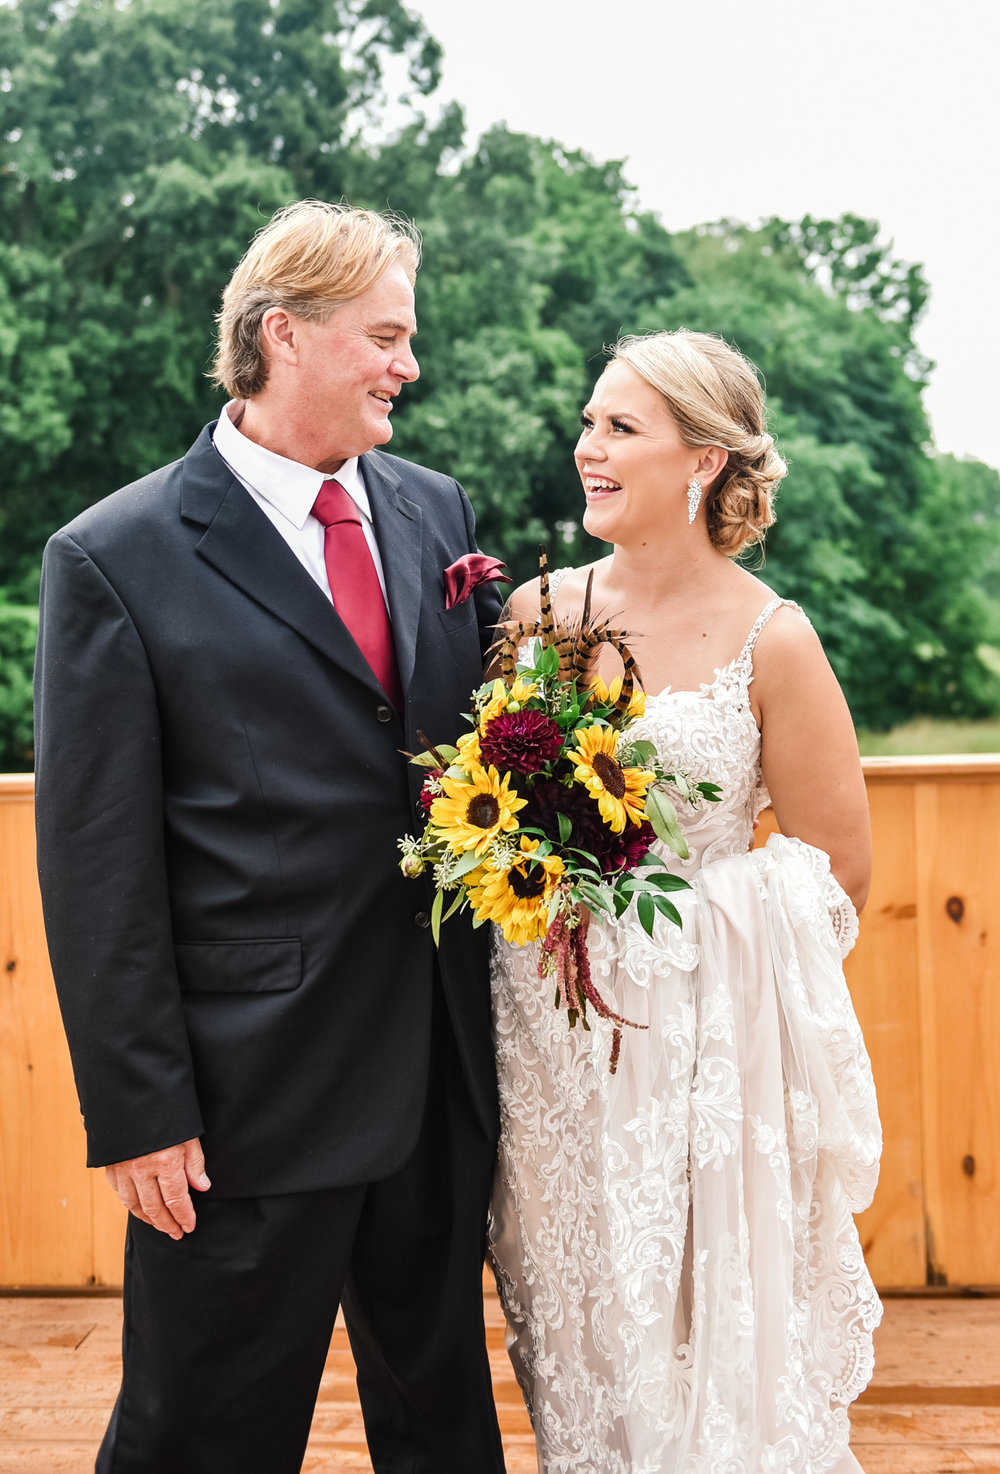 Cobblestone_Wedding_Barn_Rochester_Wedding_JILL_STUDIO_Rochester_NY_Photographer_DSC_7365.jpg